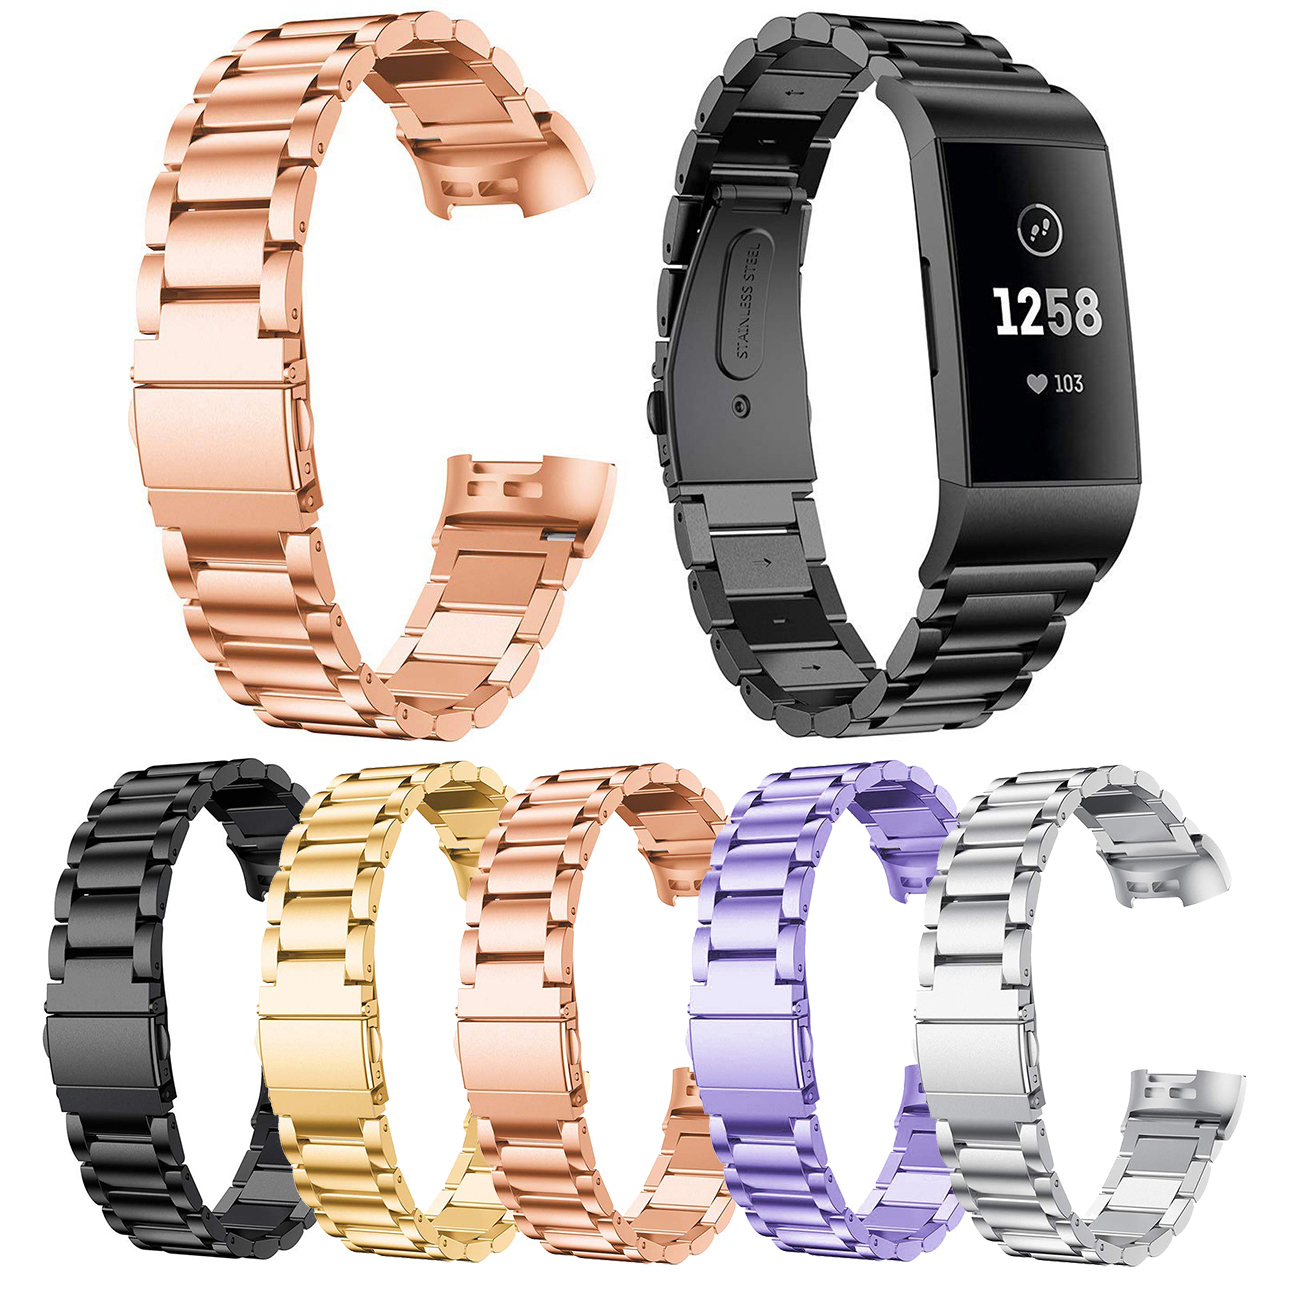 Essidi Stainless Steel Bracelet Strap For Fitbit Charge 3 4 Smart Wristband Loop Replacement For Charge 3 4 Metal Band Strap